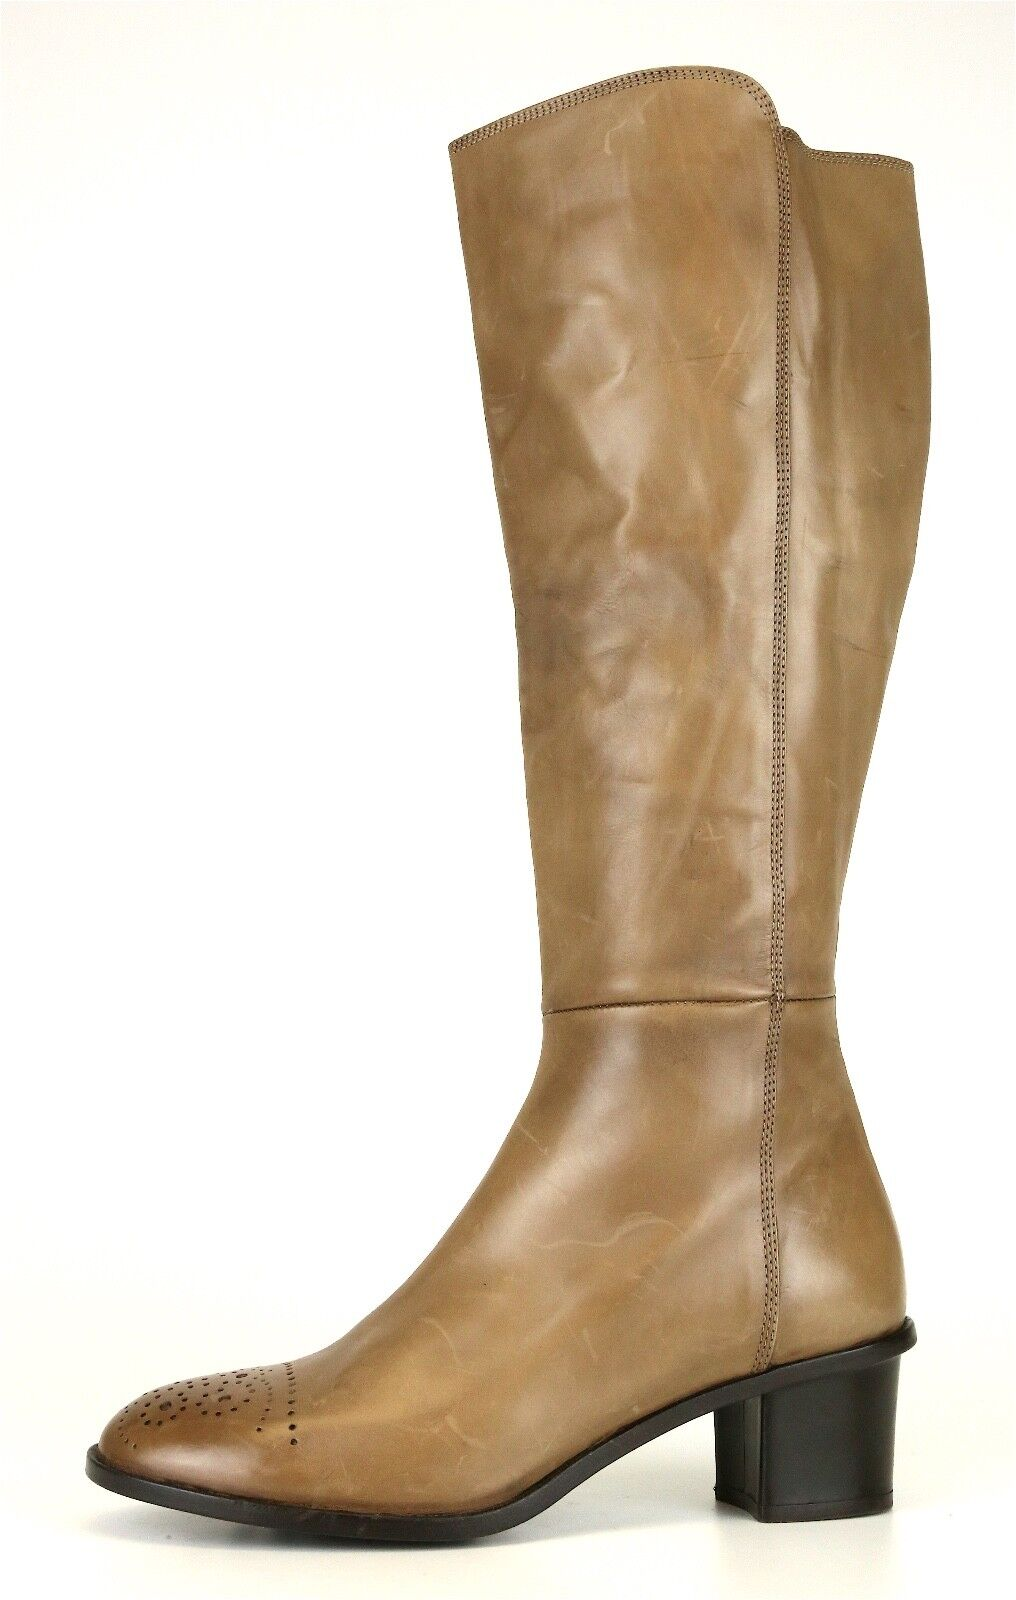 AGL Tall Leather Side Zip Zip Zip bottes Tan femmes Sz 41.5 EUR 6644  e7dc30